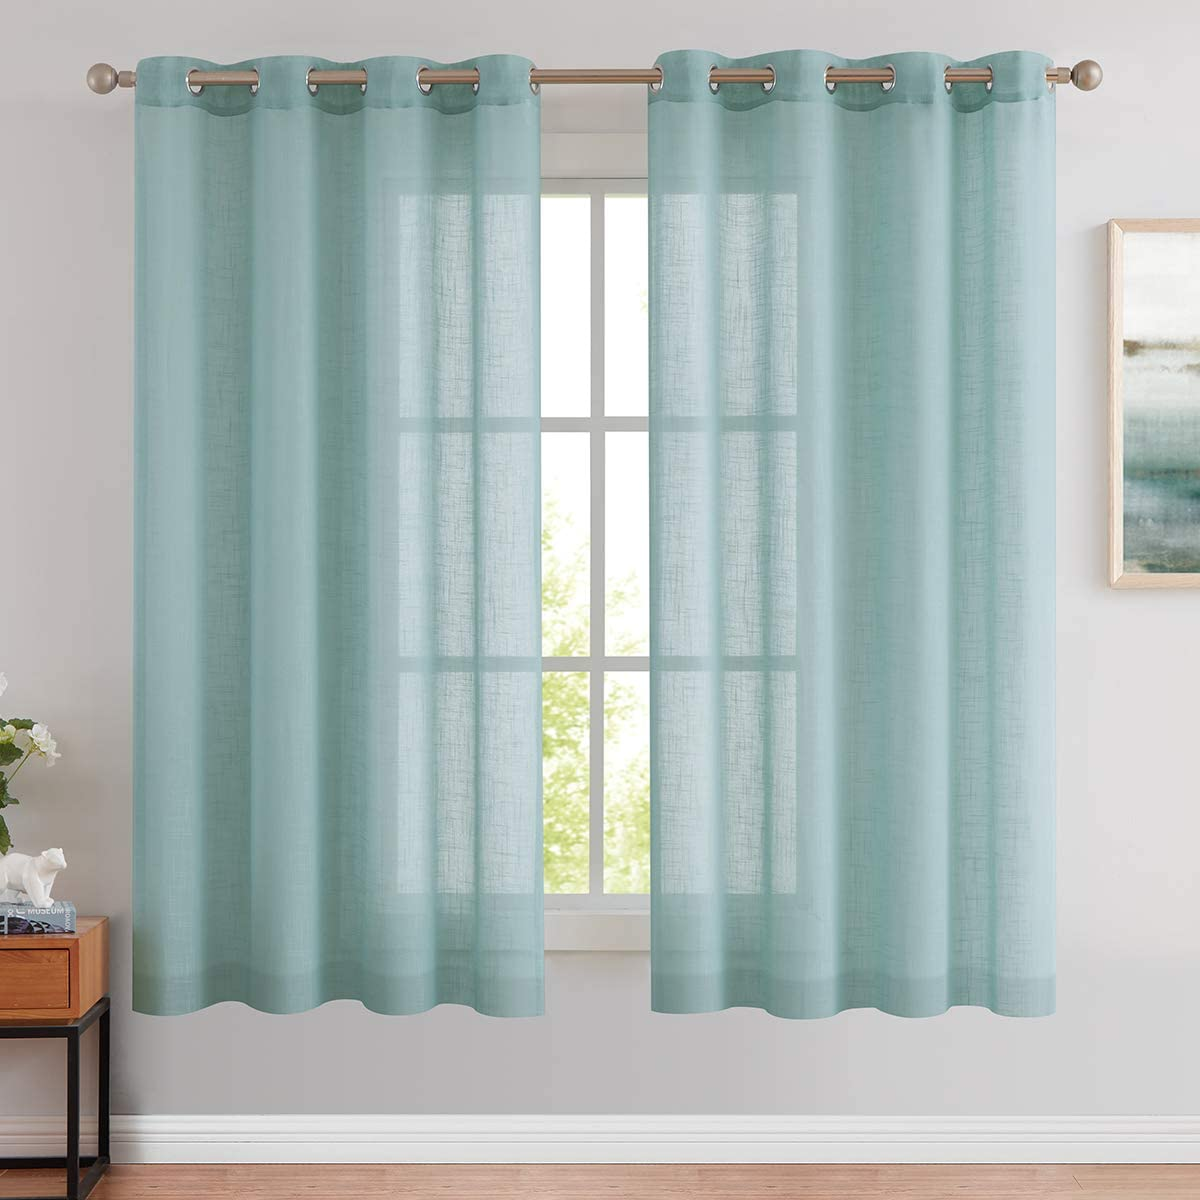 Amazon Com Best Dreamcity Solid Grommet Top Faux Linen Semi Sheer Curtains For Living Room Pack Of 2 Panels W52 X L63 Blue Green Home Kitchen